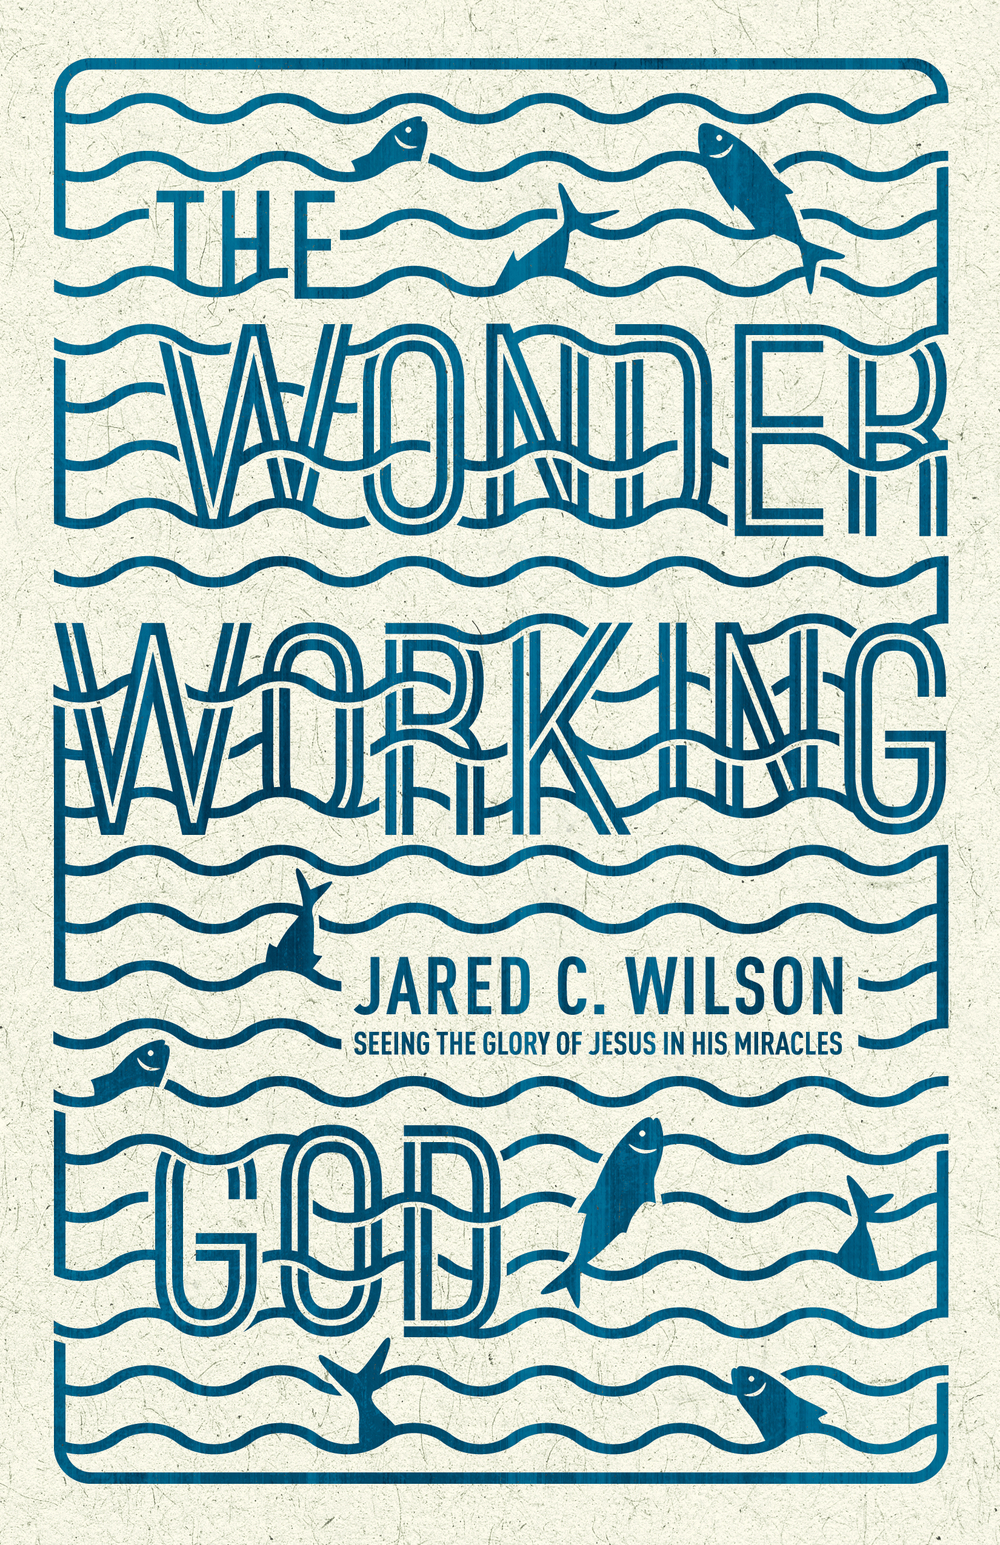 Wonder-Working-God.jpg